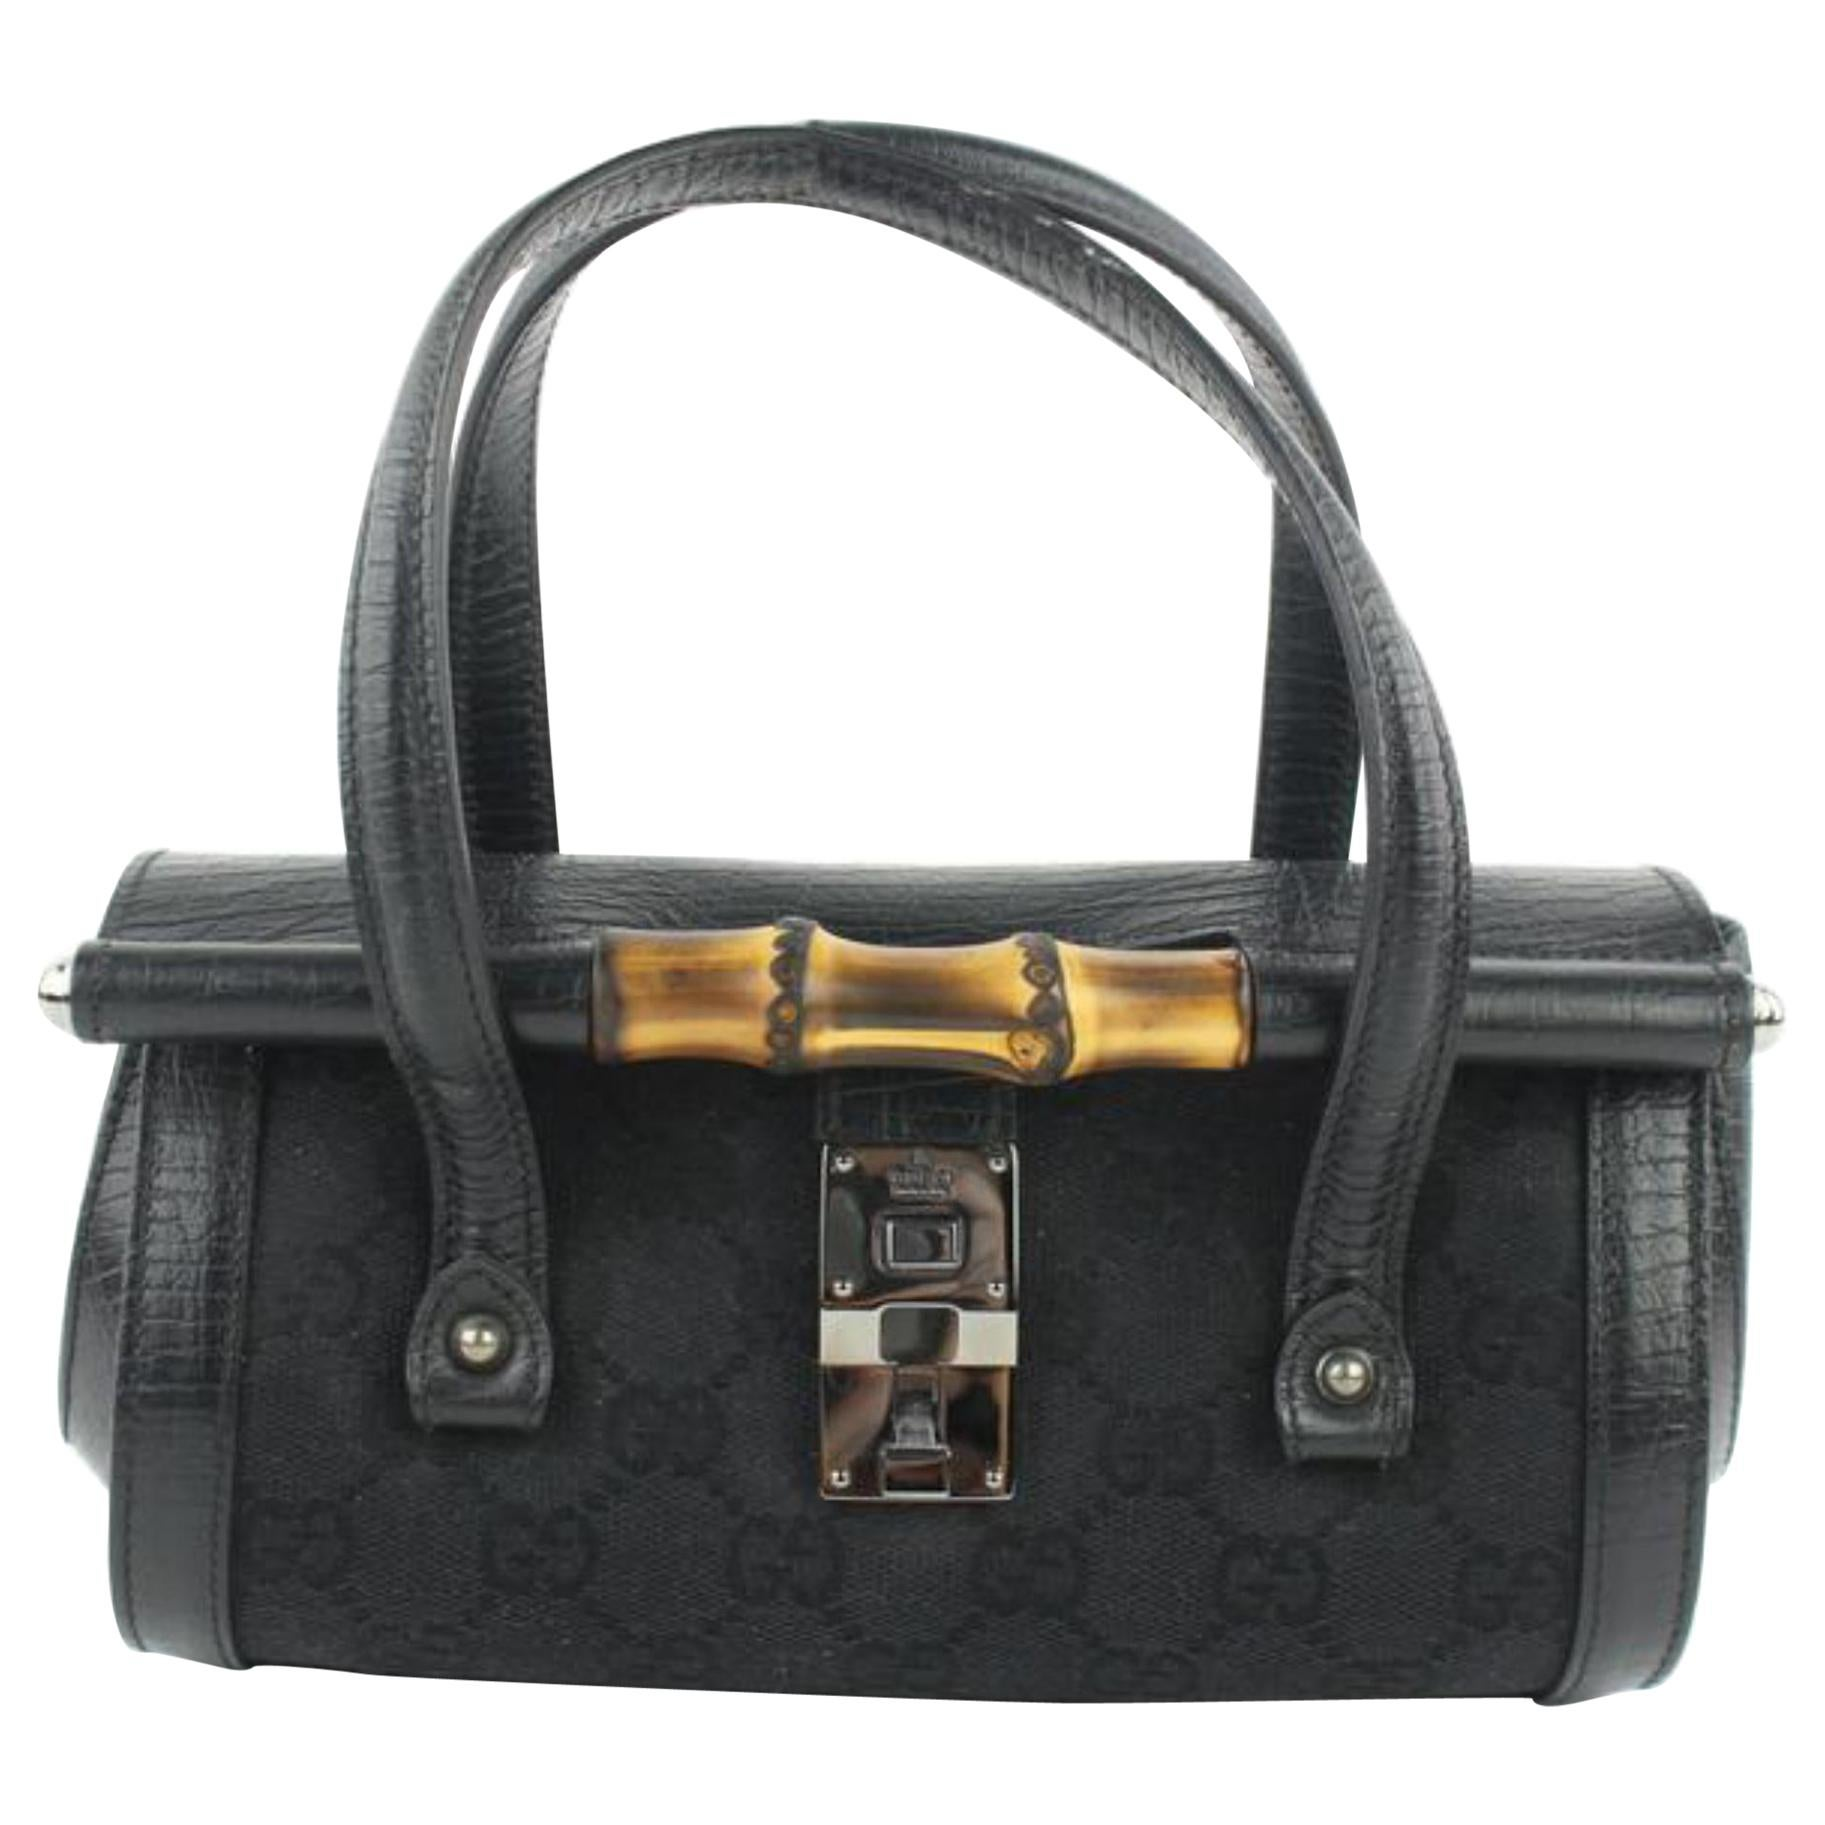 e9697e3418bb14 Vintage Gucci Handbags and Purses - 2,513 For Sale at 1stdibs